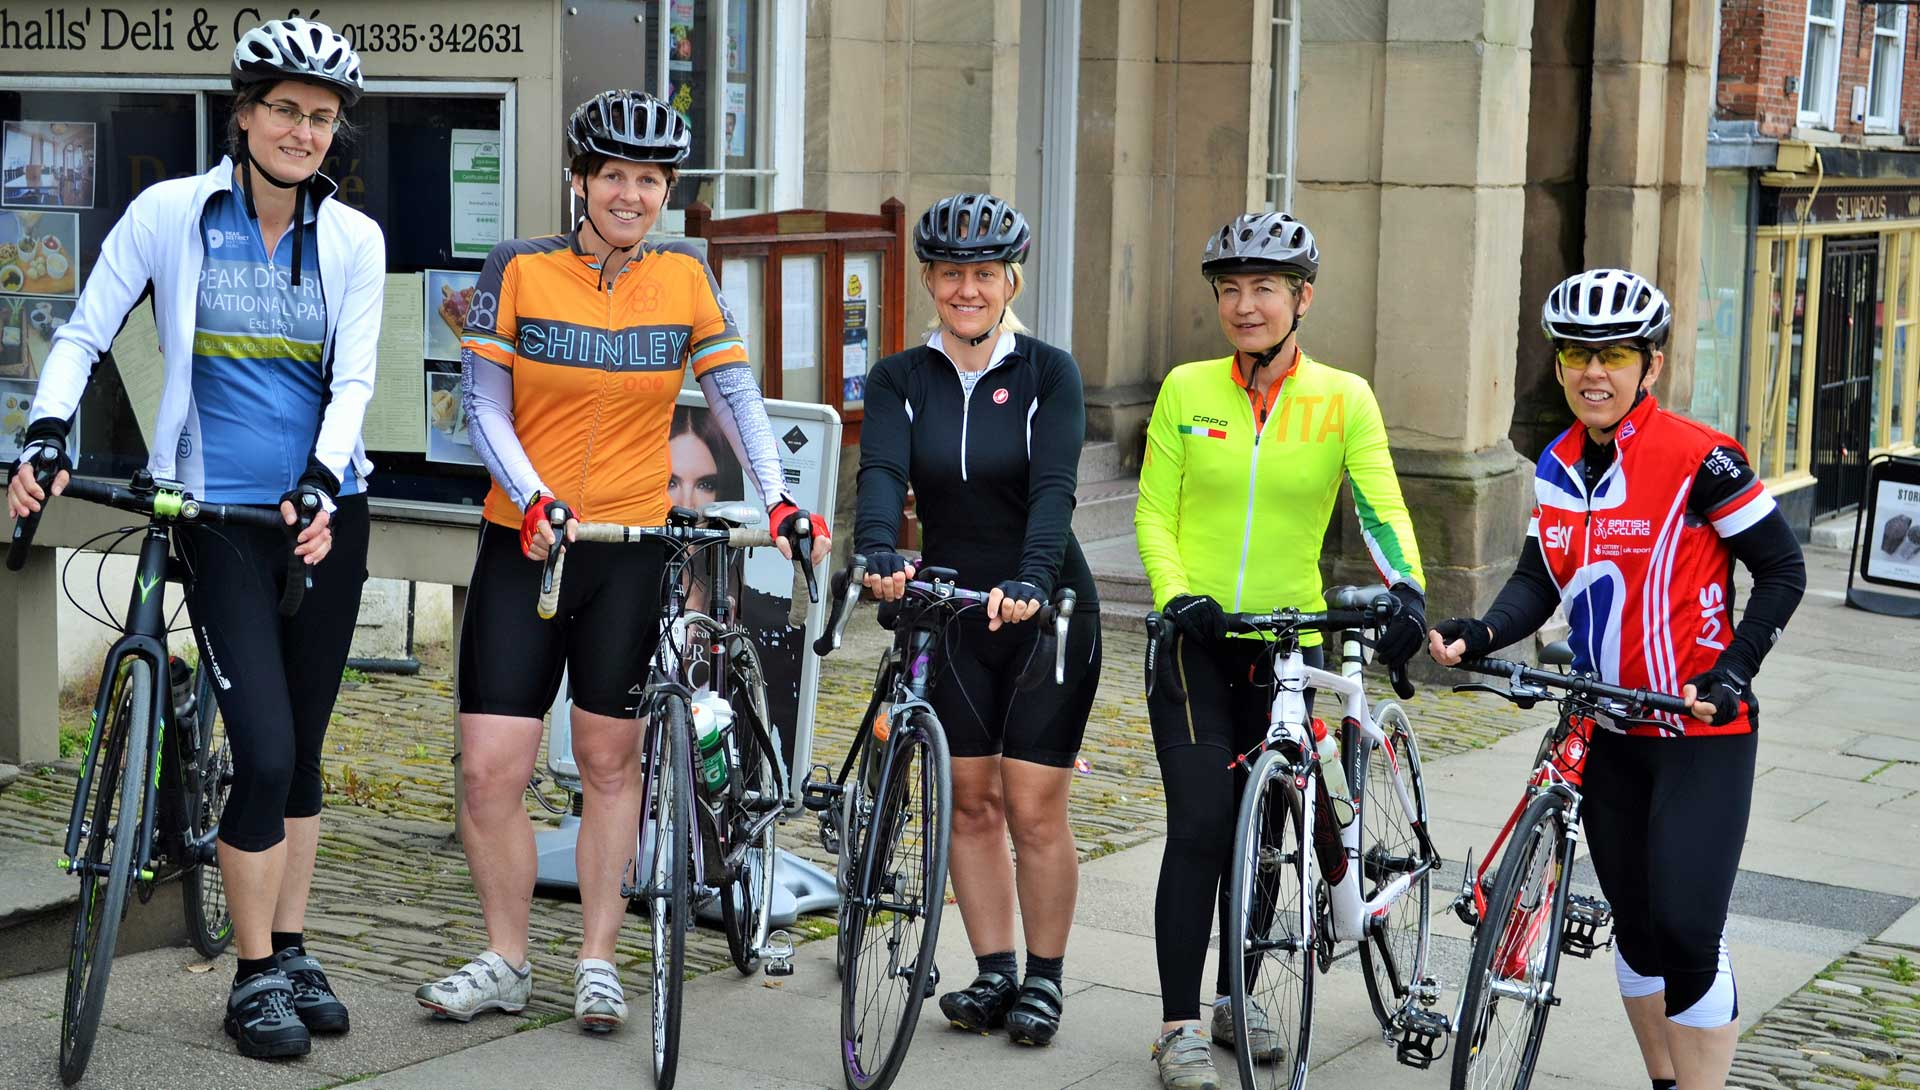 Riding Derbyshire Aviva Women's Tour Stage to promote cycling to women and girls